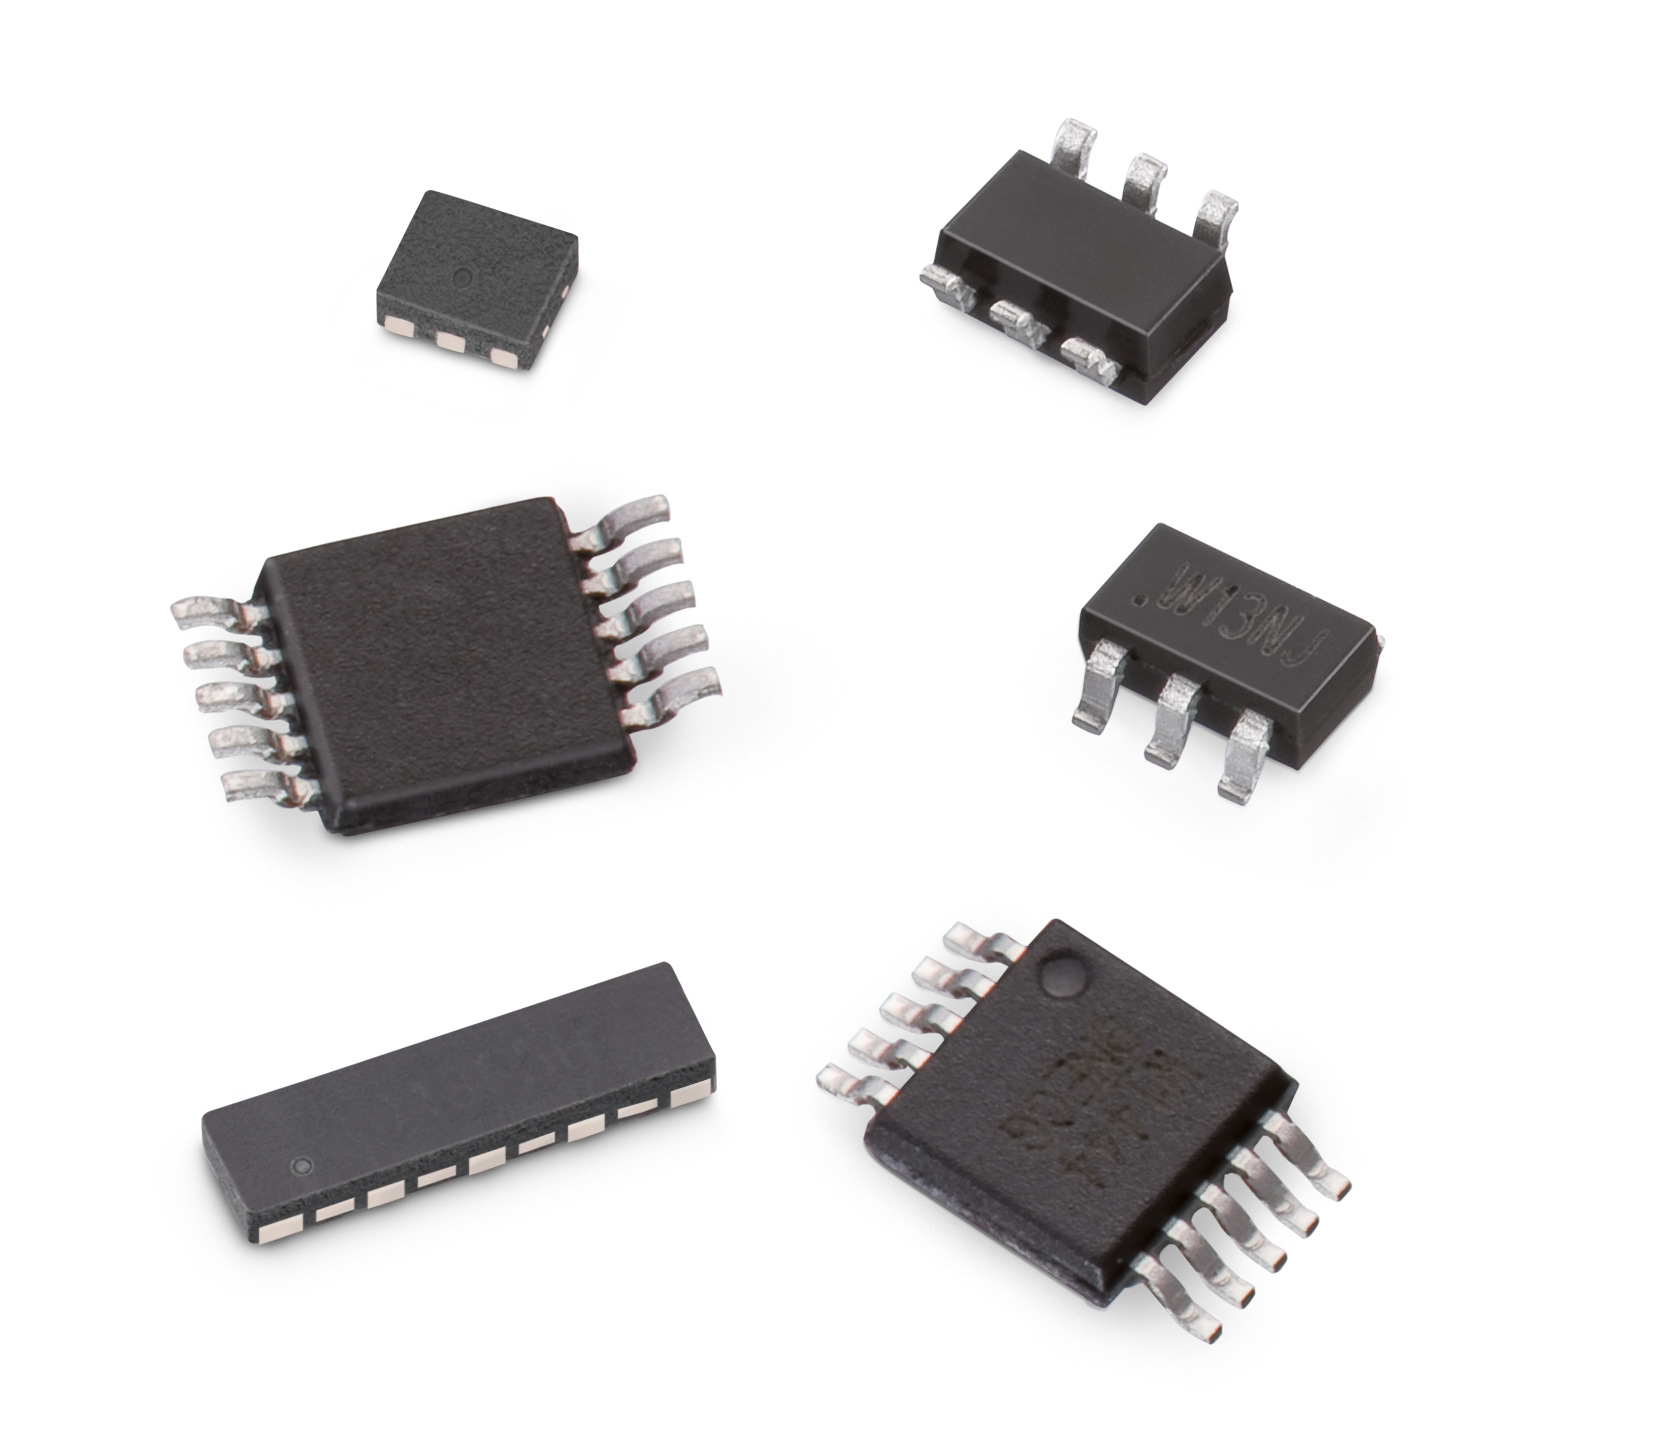 824551121 ESD Suppressors//TVS Diodes WE-TVSP Bidirect 3000W 12VDC DO214AB, Pack of 40